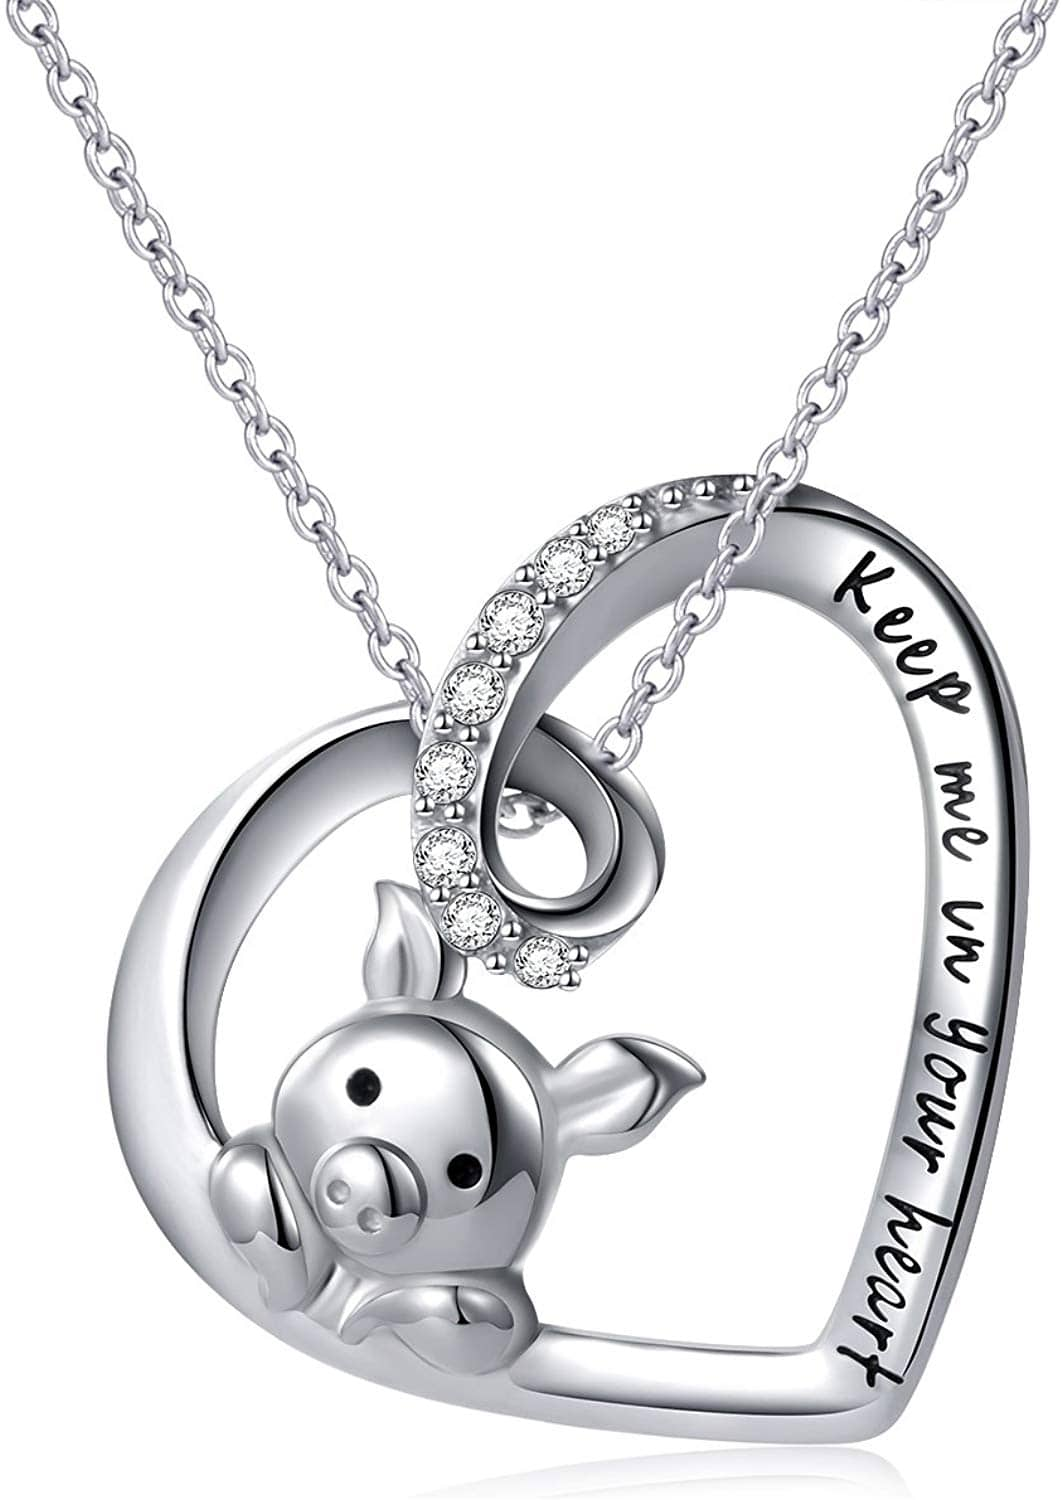 Sterling Silver Engraved 'Keep Me in Your Heart' Pig Pendant Necklace- $16.99 FS w/Prime